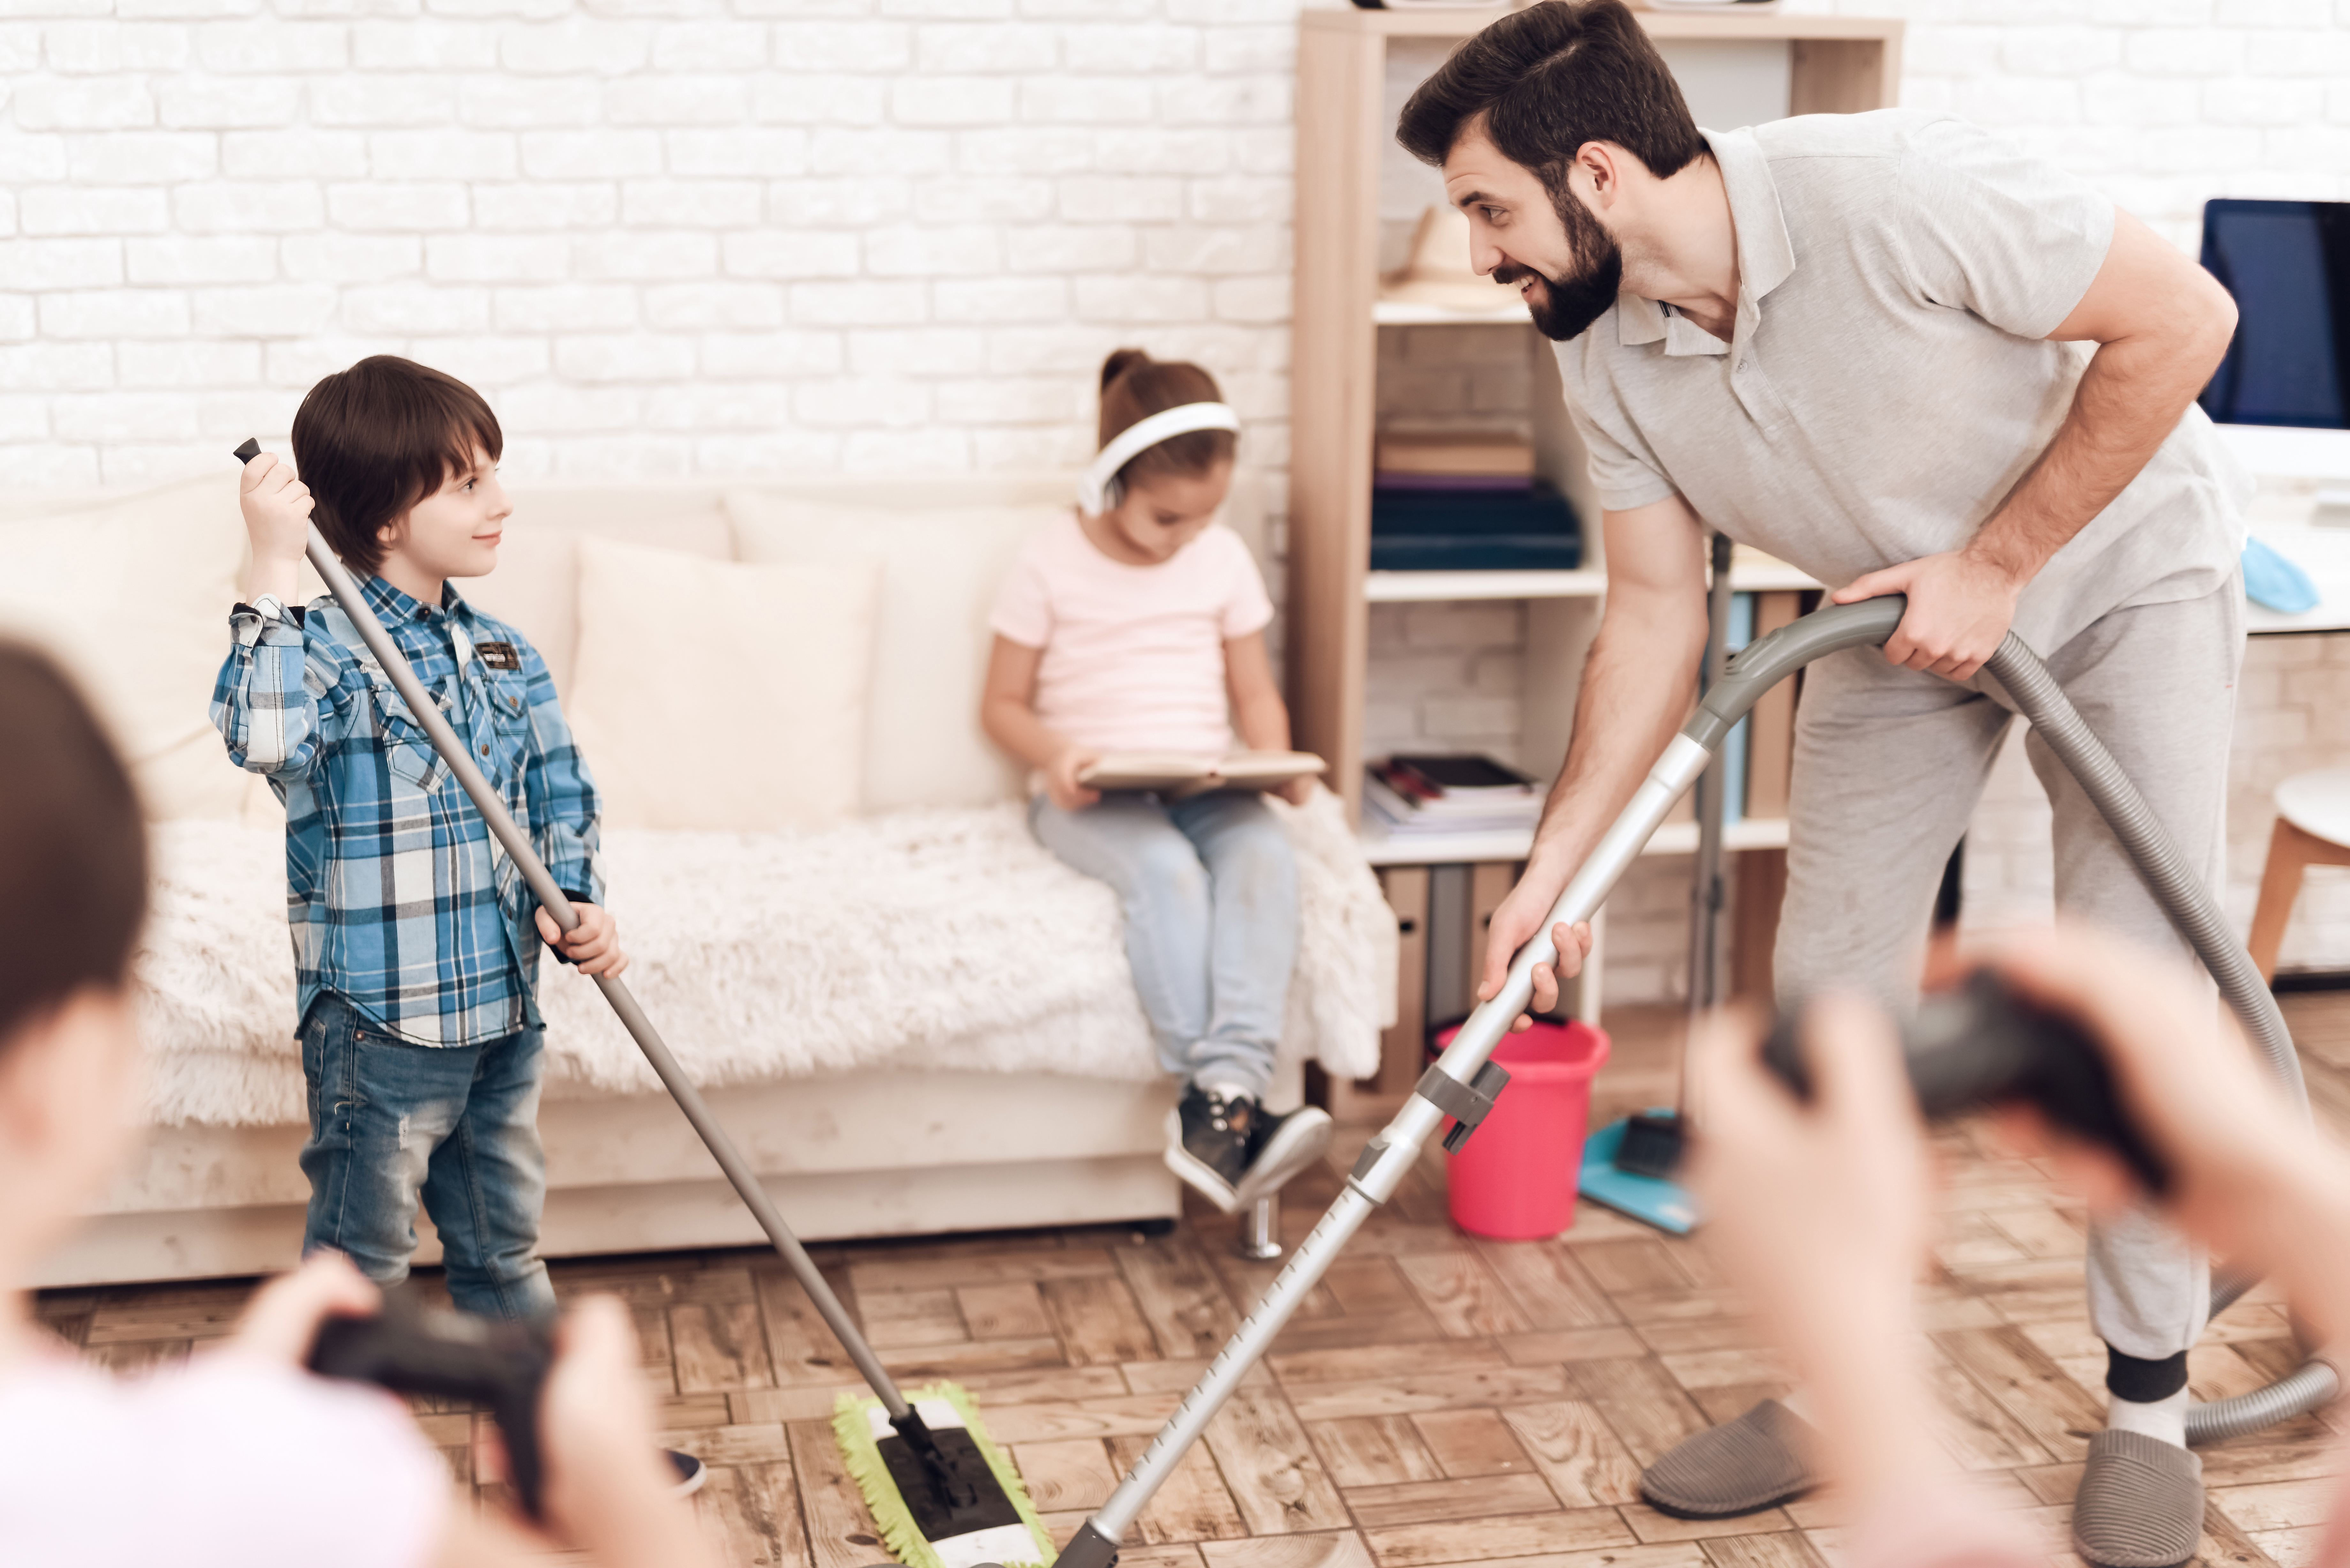 How to prepare for spring cleaning